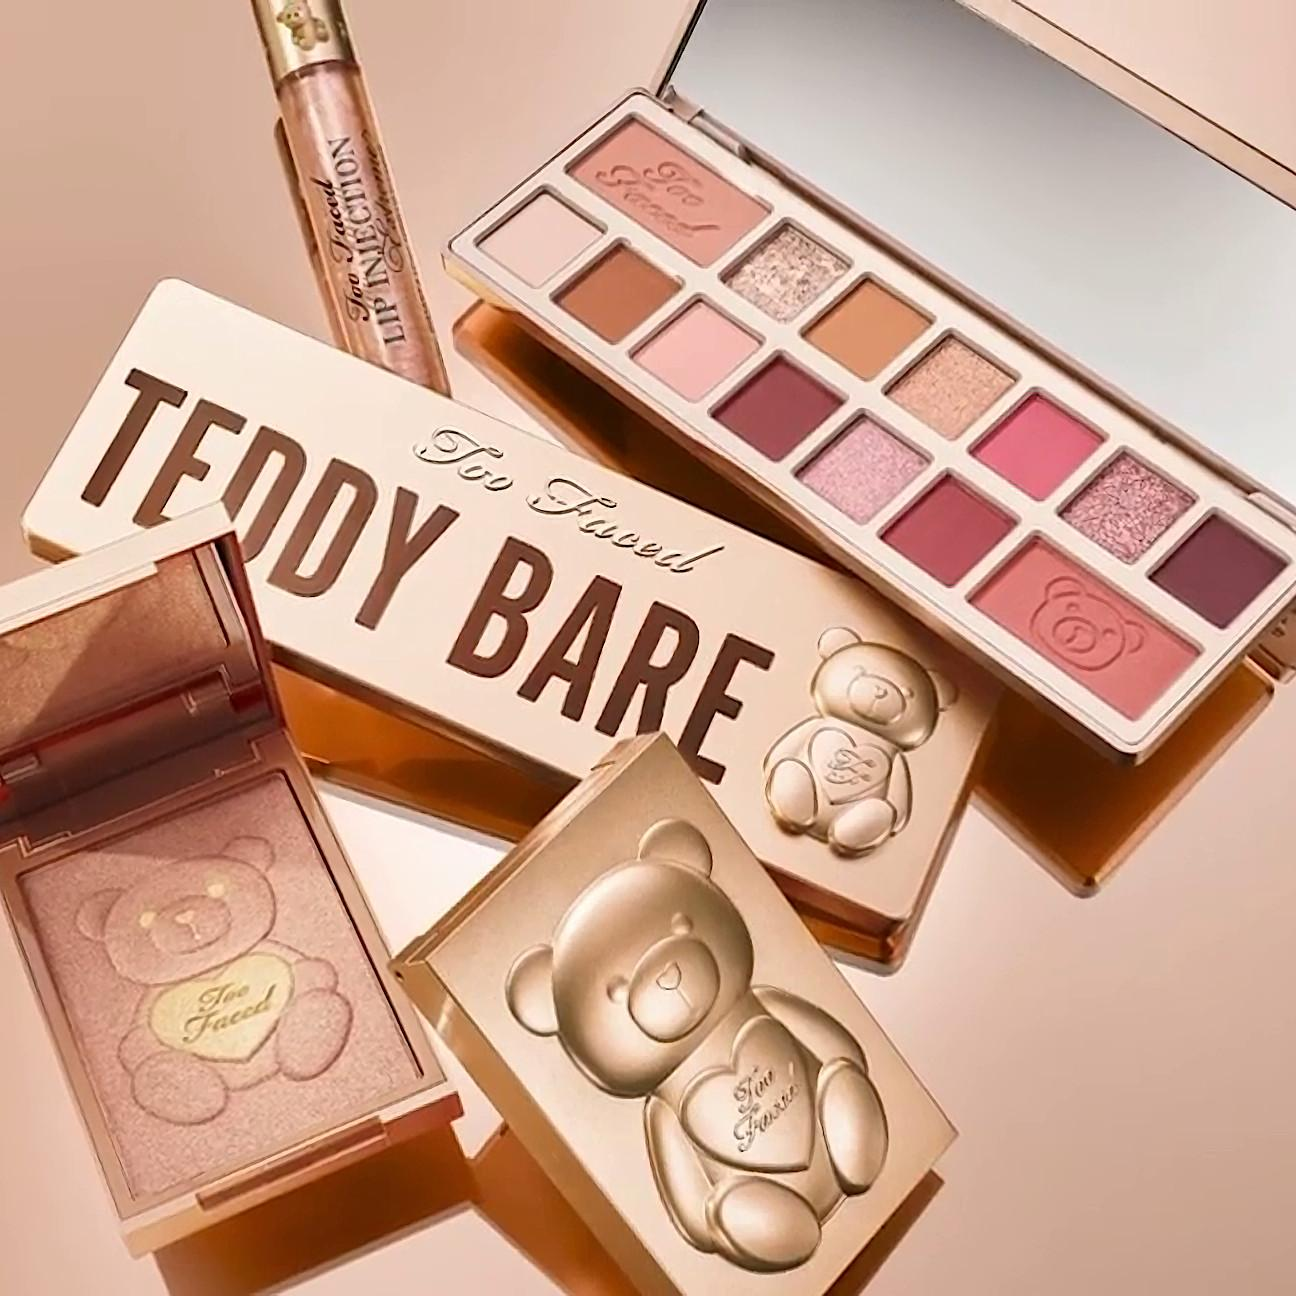 Too Faced Teddy Bare Collection Collection Promo Video